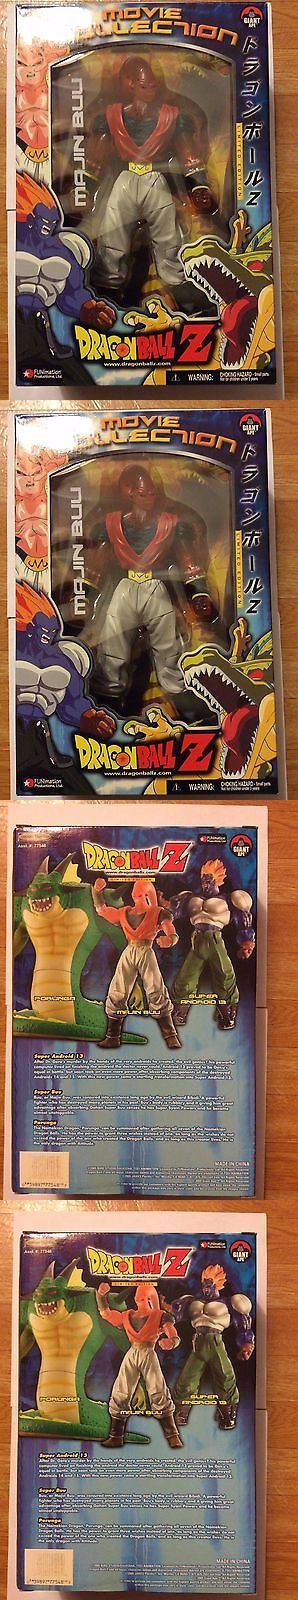 DragonBall Z 7117: Dragon Ball Z Limited Edition Movie Collection Series 10 Majin Buu 9 Inch Figure -> BUY IT NOW ONLY: $32.98 on eBay!